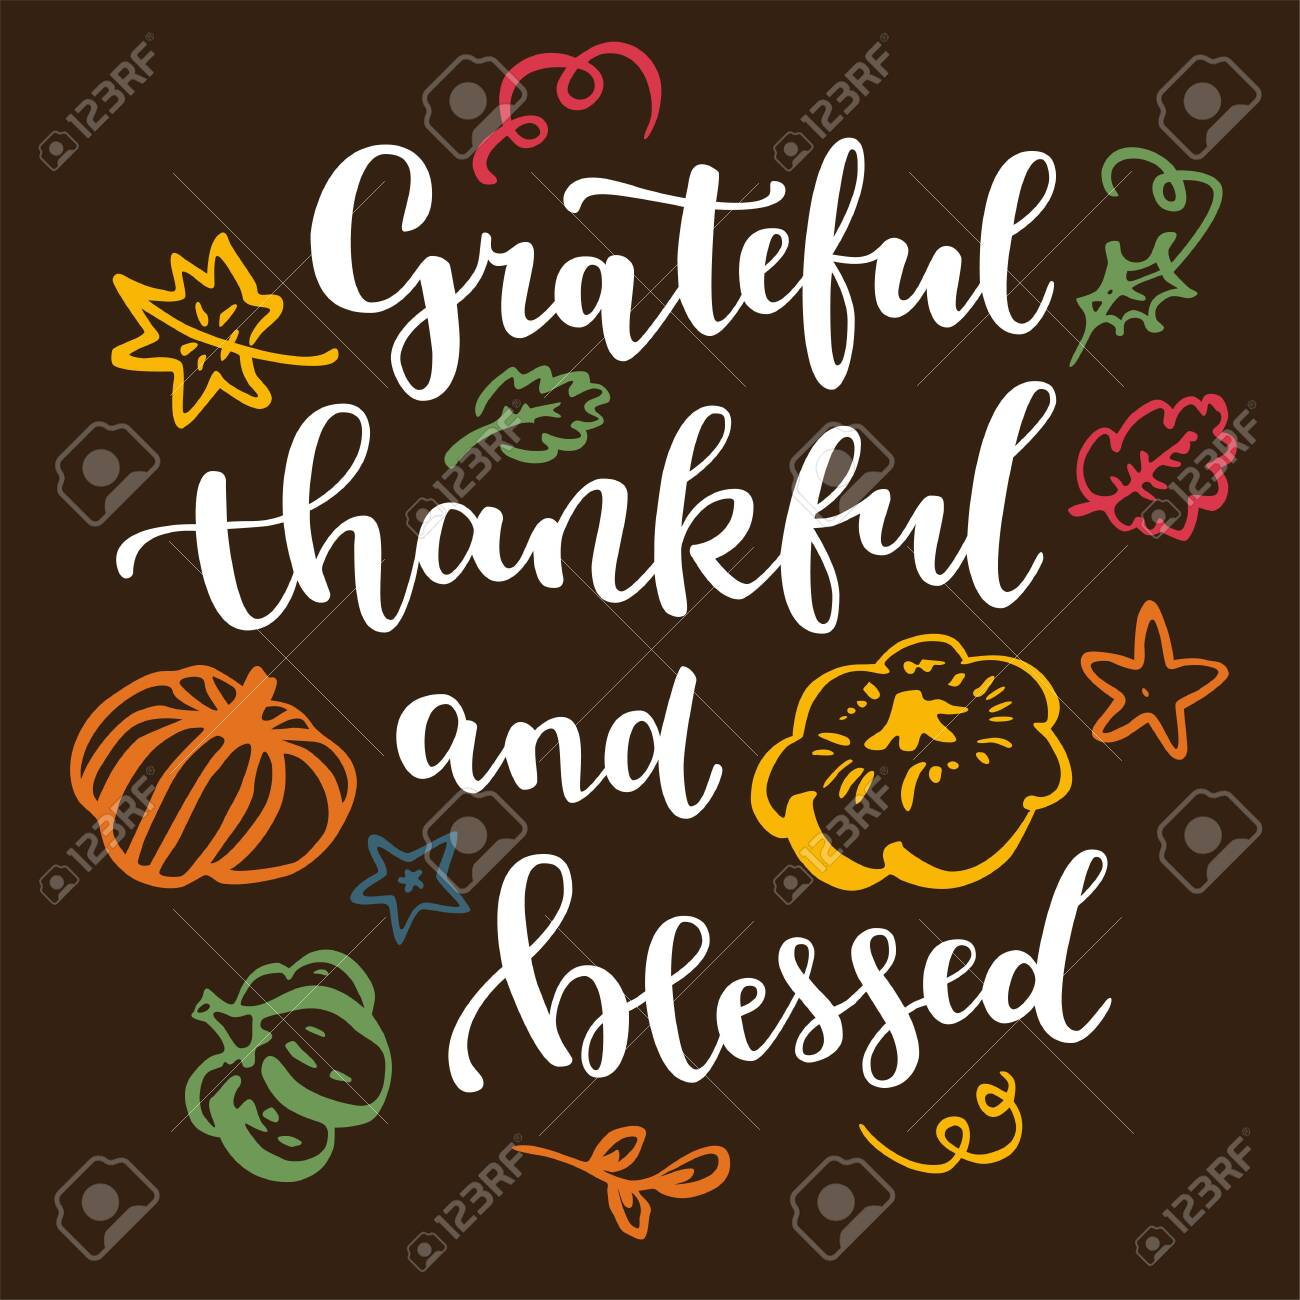 Grateful Thankful And Blessed Thanksgiving Quote Fall Modern Royalty Free Cliparts Vectors And Stock Illustration Image 129396452